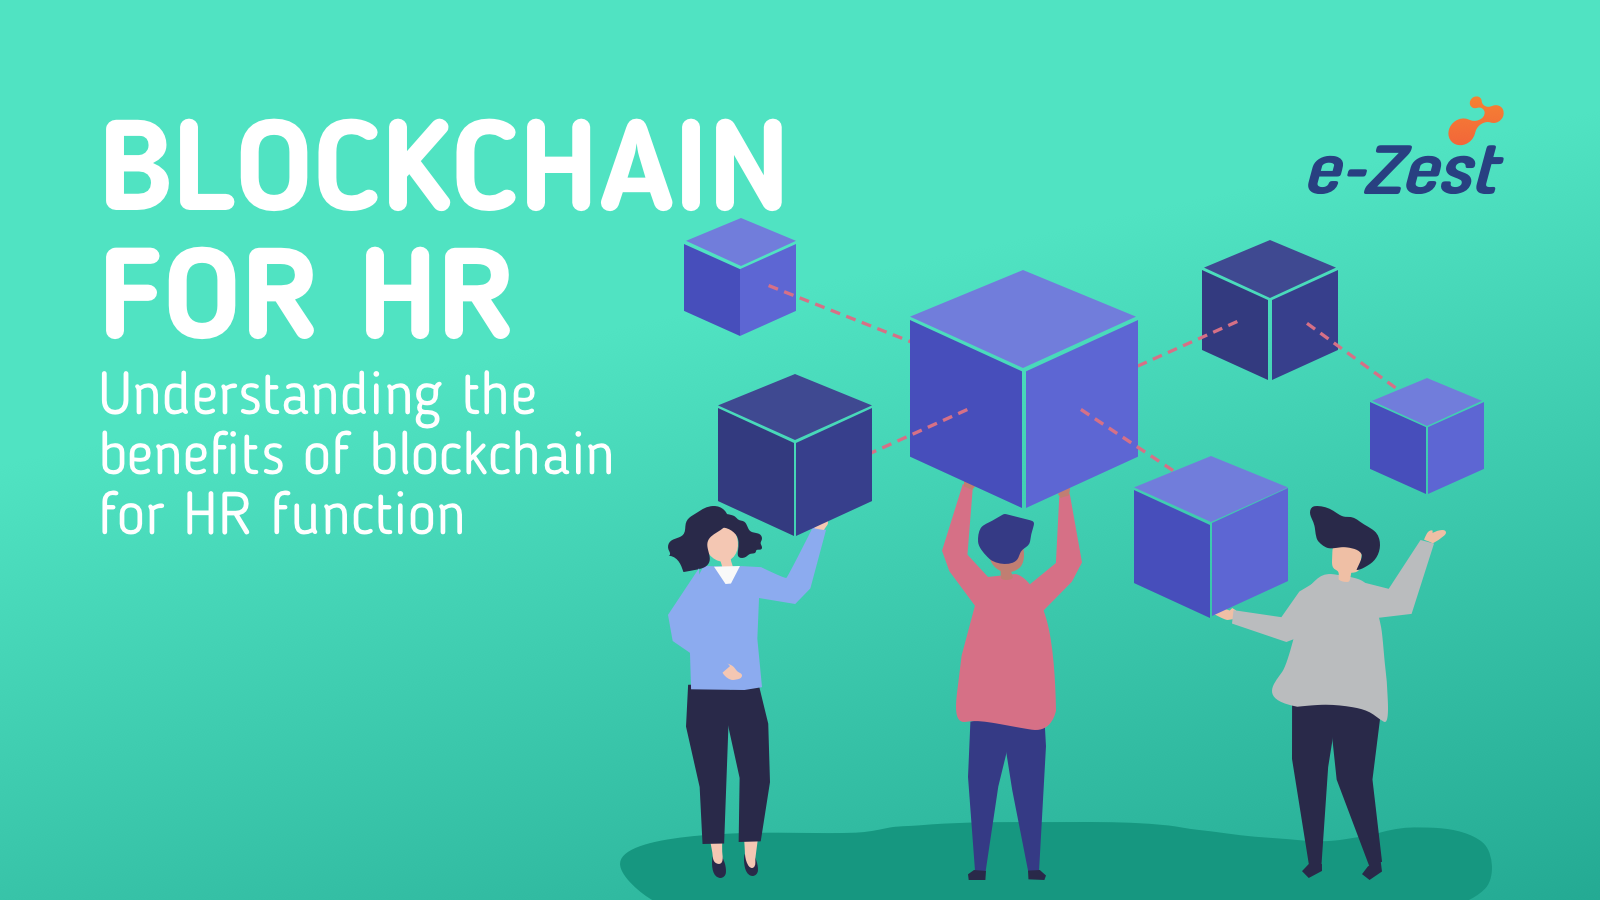 Blockchain for HR